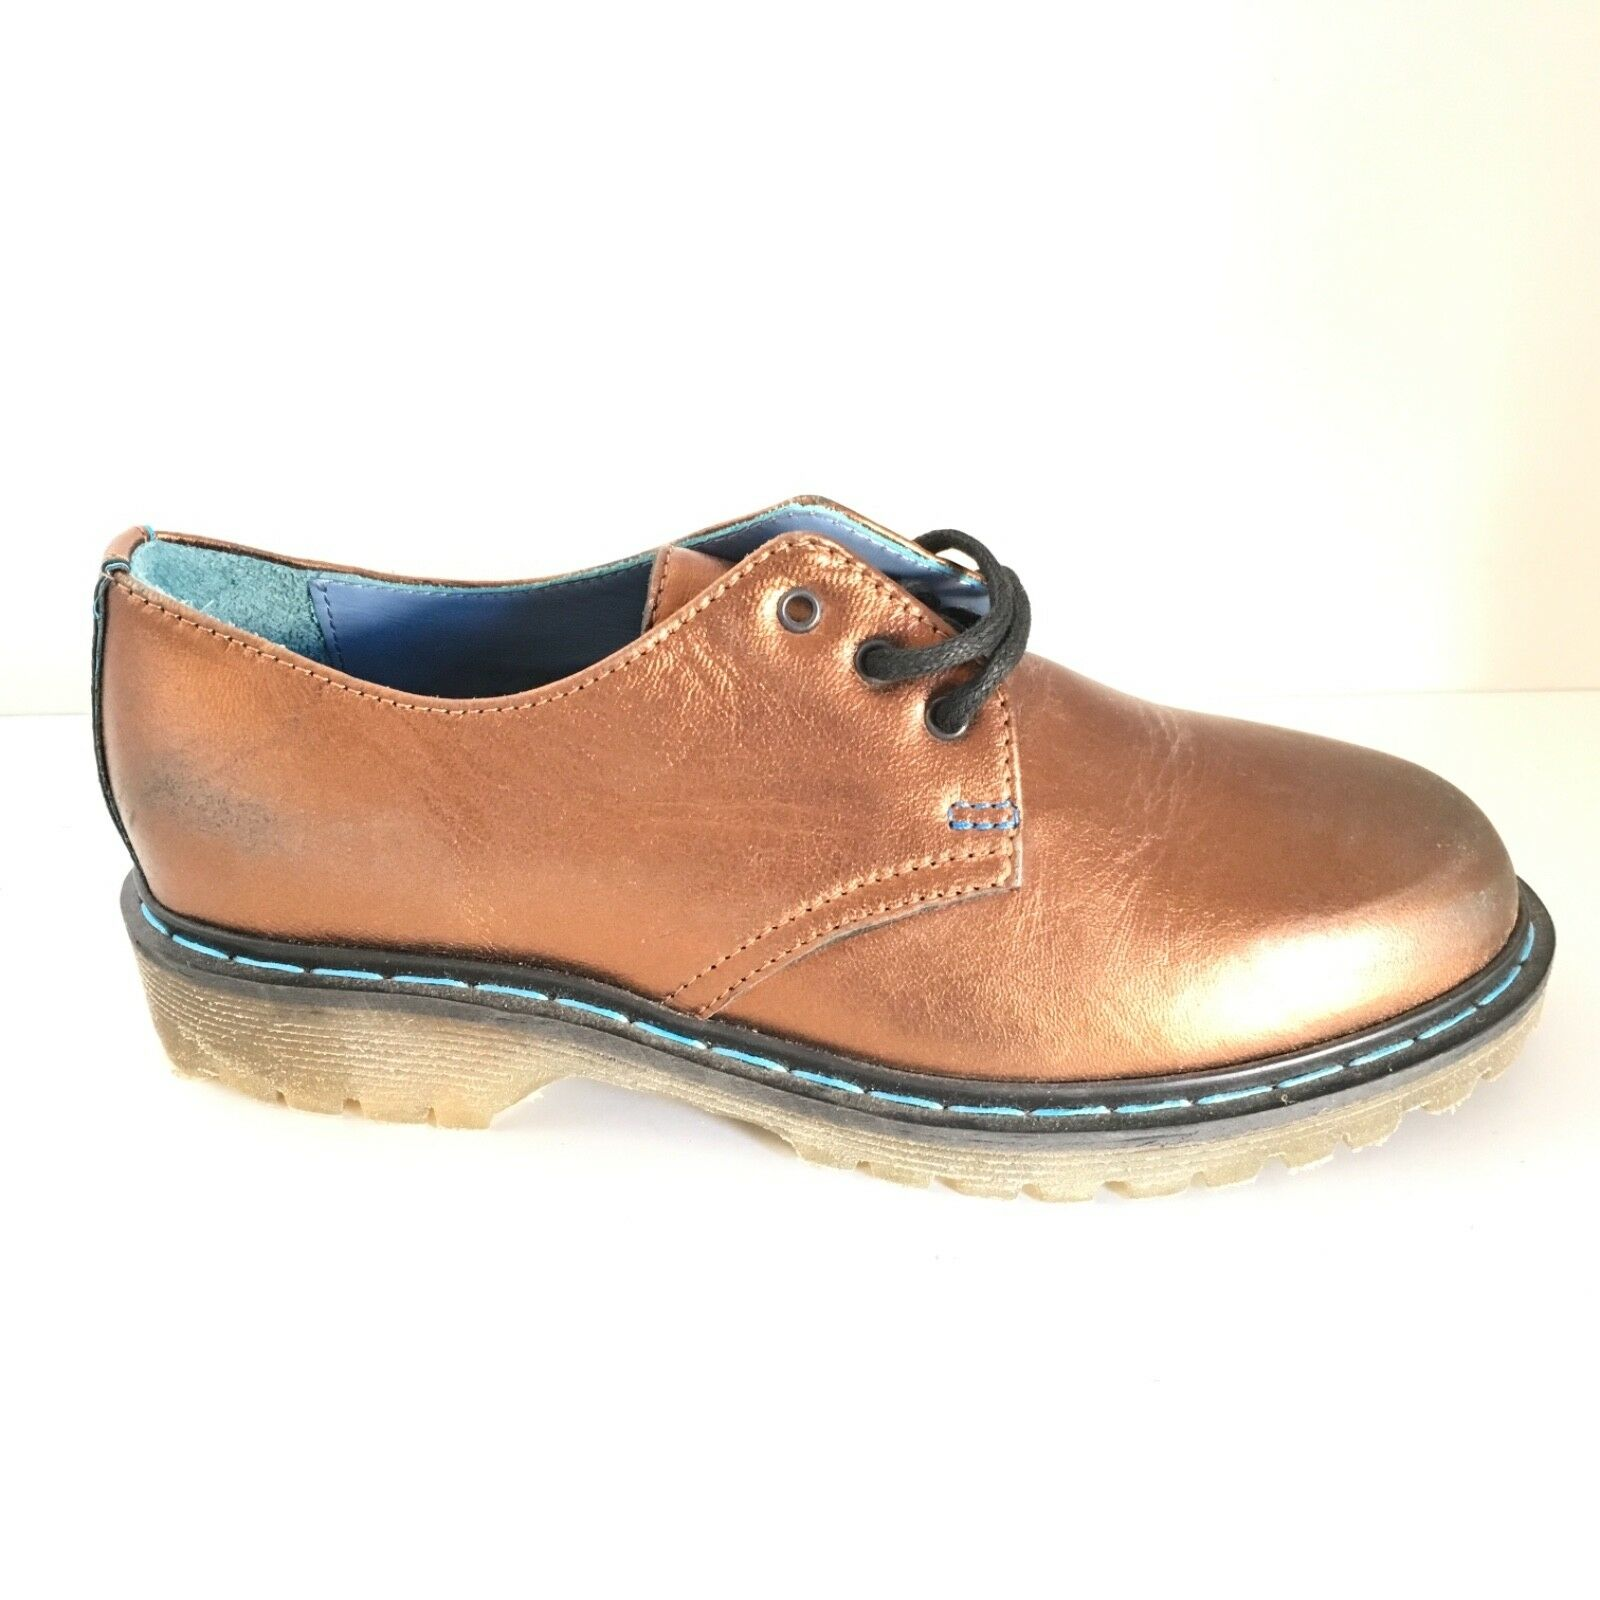 PHILIPPE MODELO chaussure n. 37 mujer mujer PHIW81 PHIW81 PHIW81 Bronce Piel c4be6c